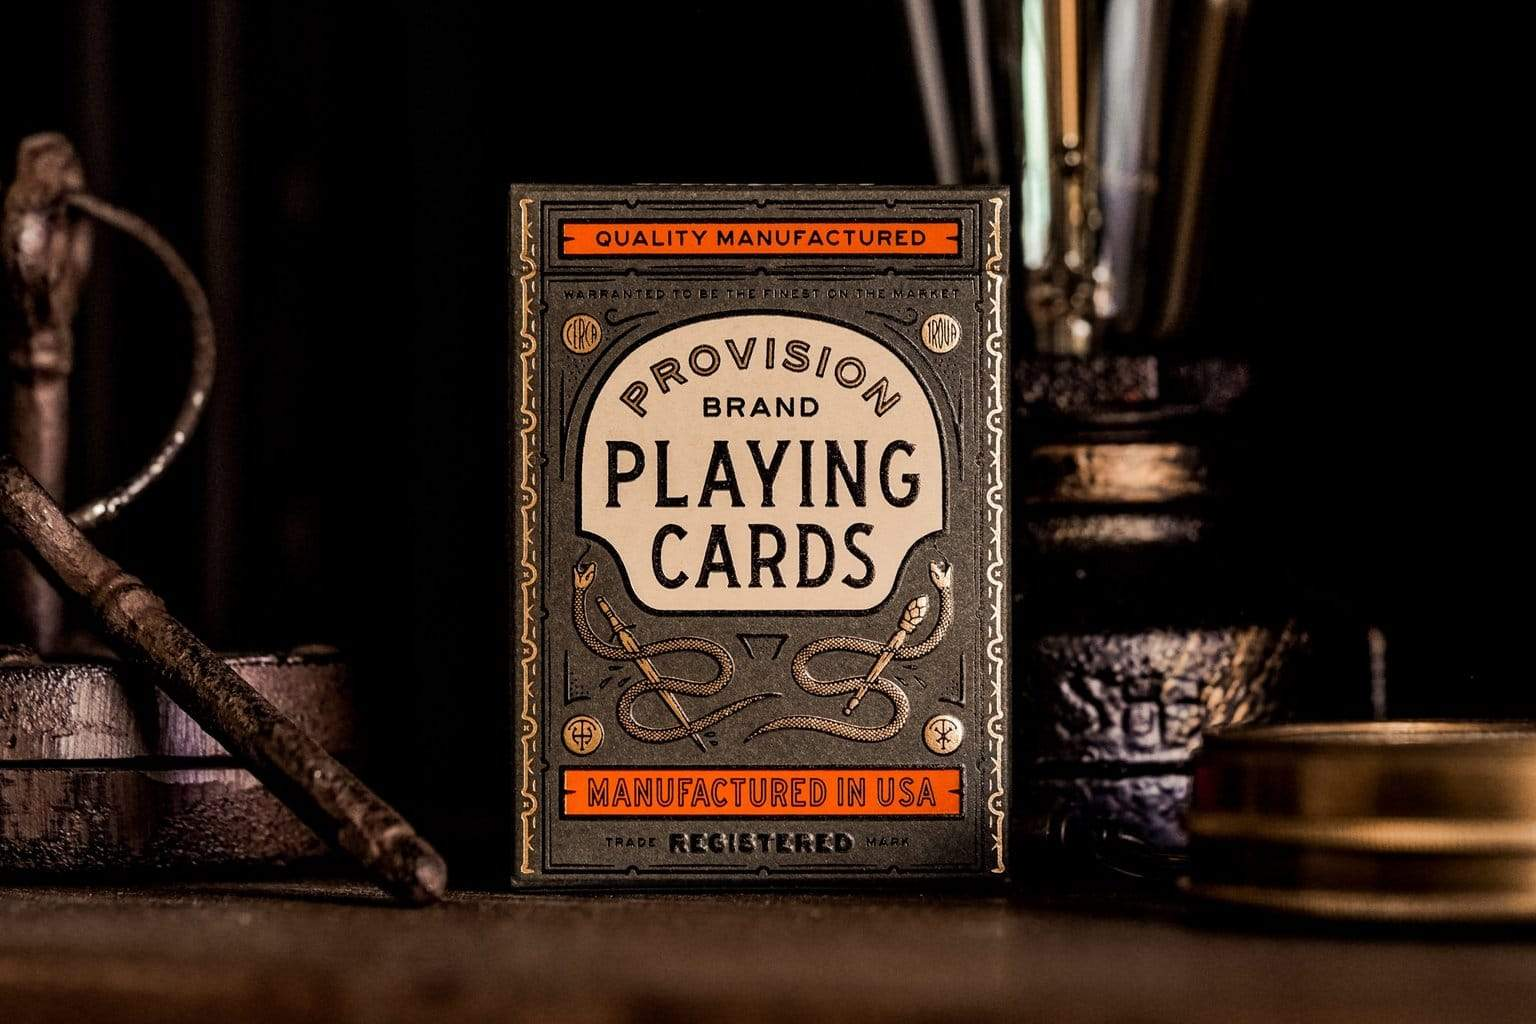 Provision Playing Cards by theory11 Alt1